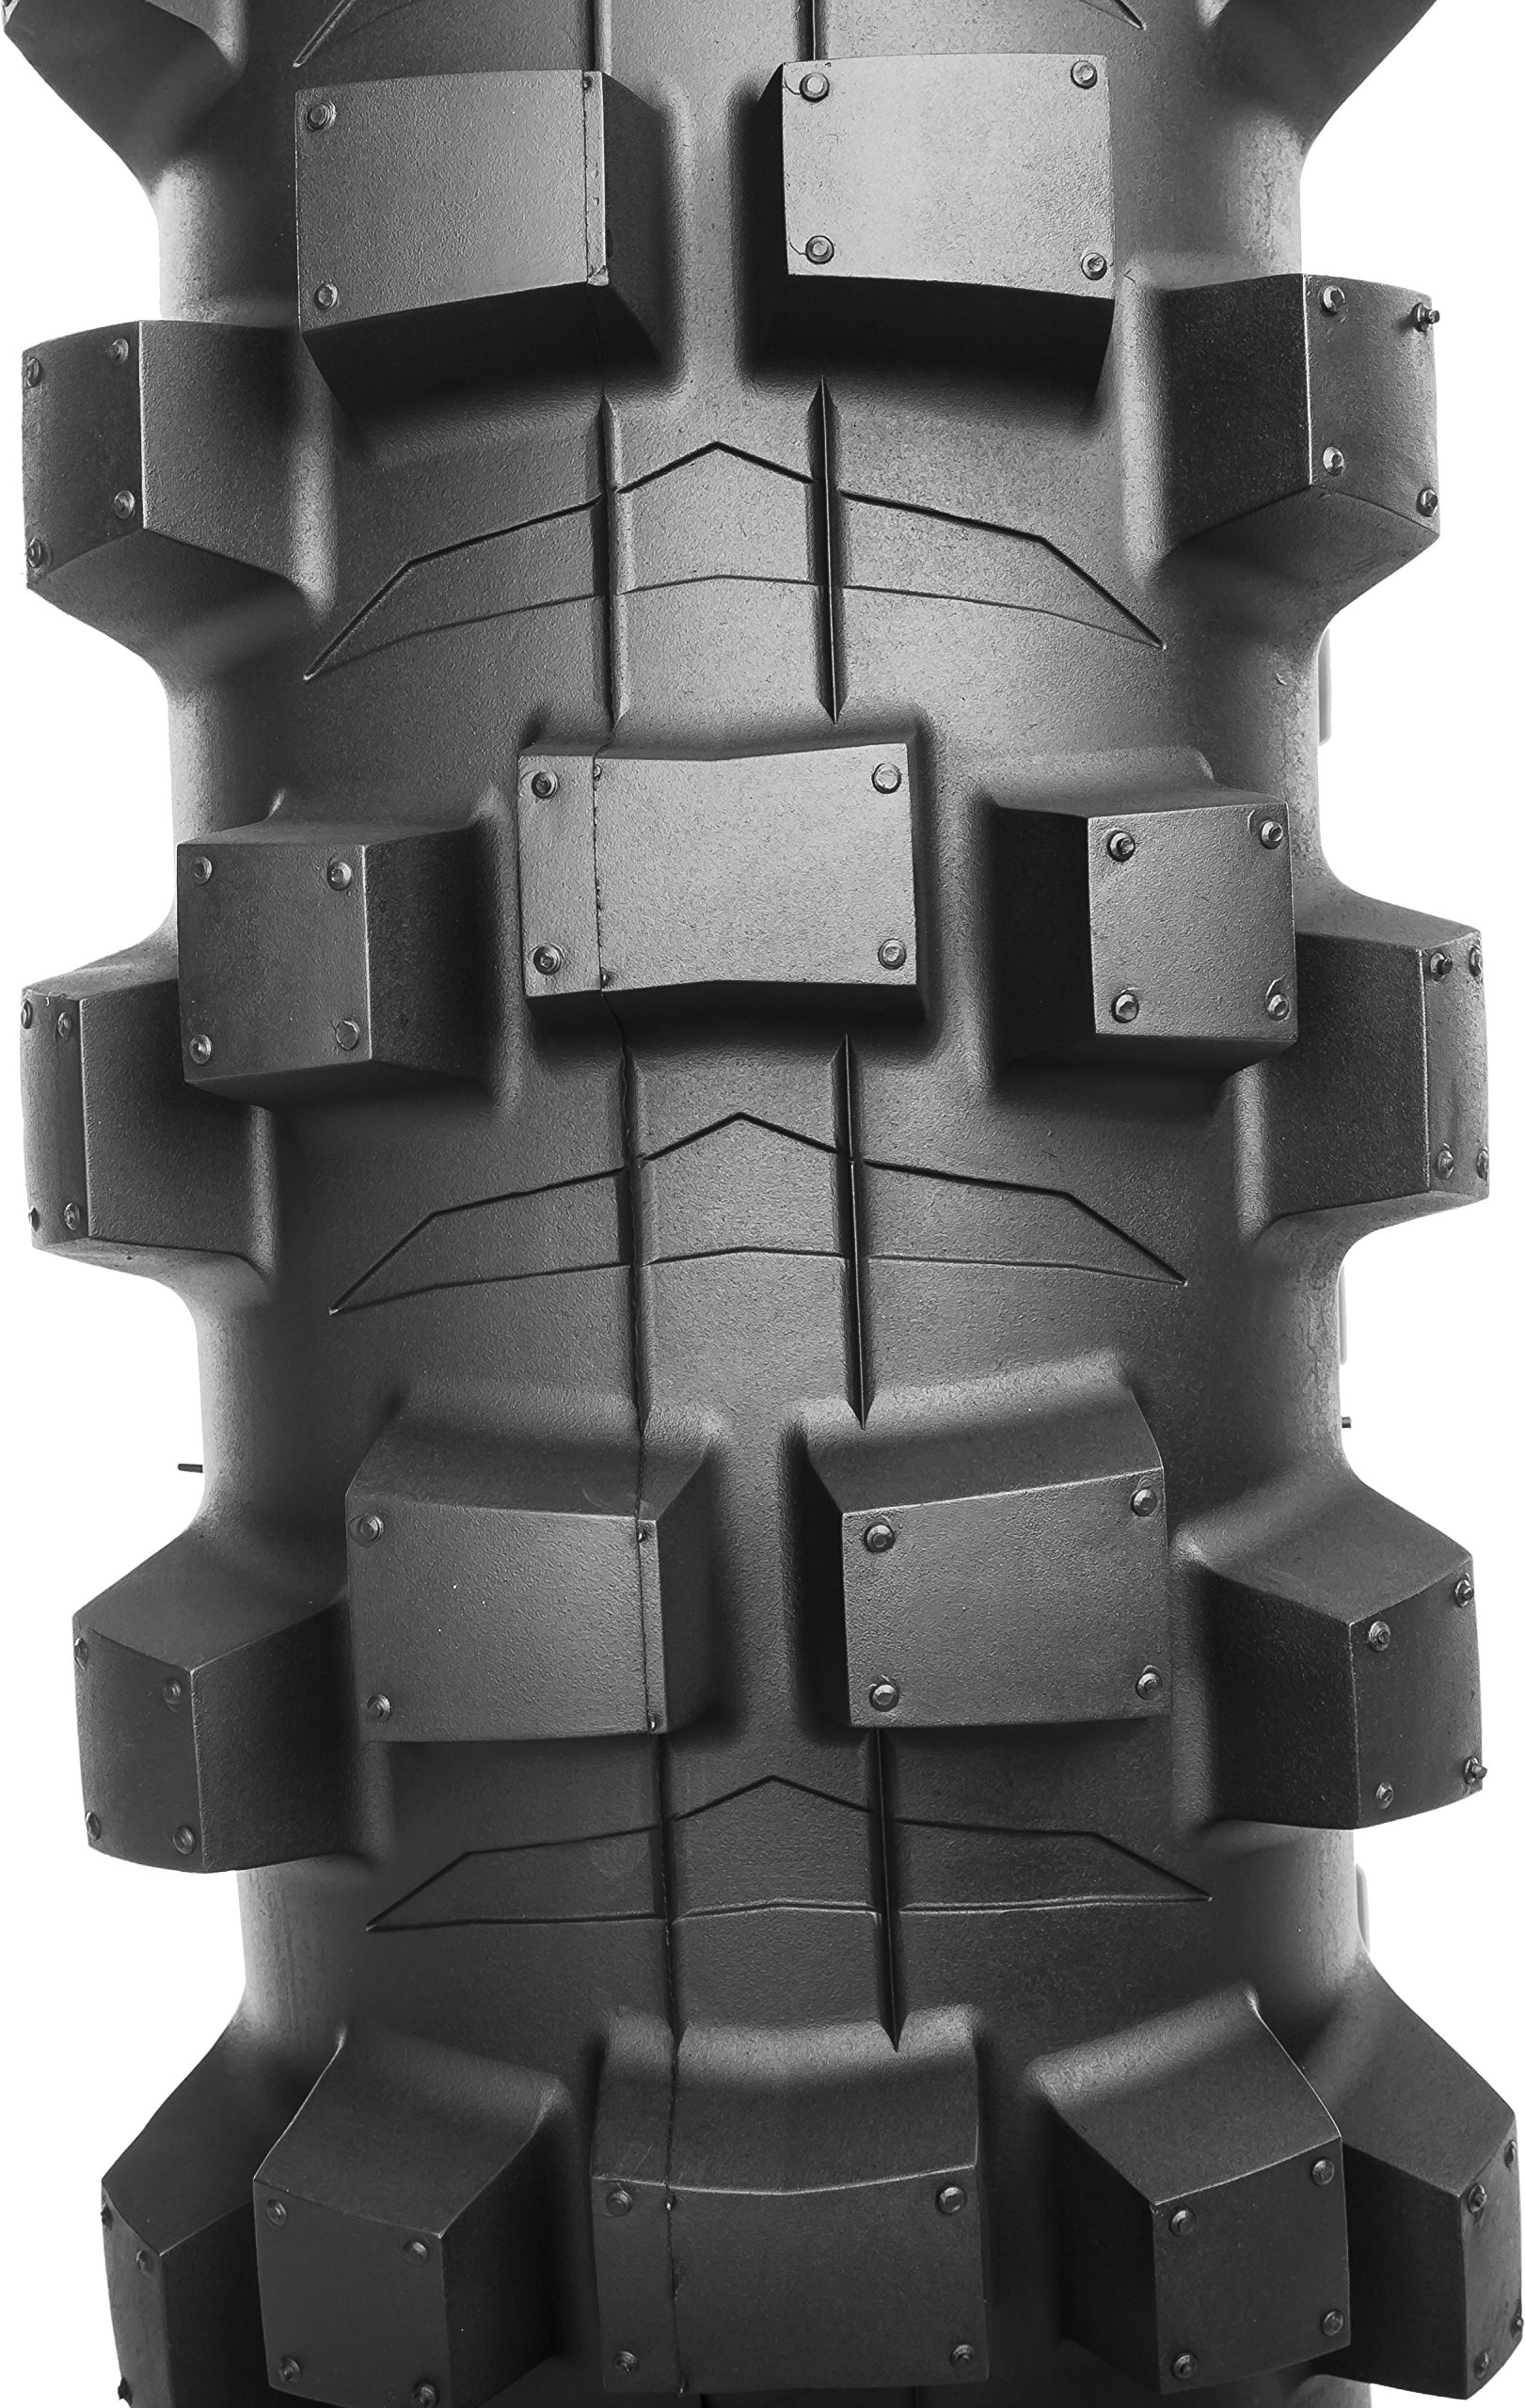 IRC M5B EVO Tire - Rear - 120/80-18 , Position: Rear, Rim Size: 18, Tire Application: Soft, Tire Size: 120/80-18, Tire Type: Offroad, Load Rating: 62, Speed Rating: M T10339